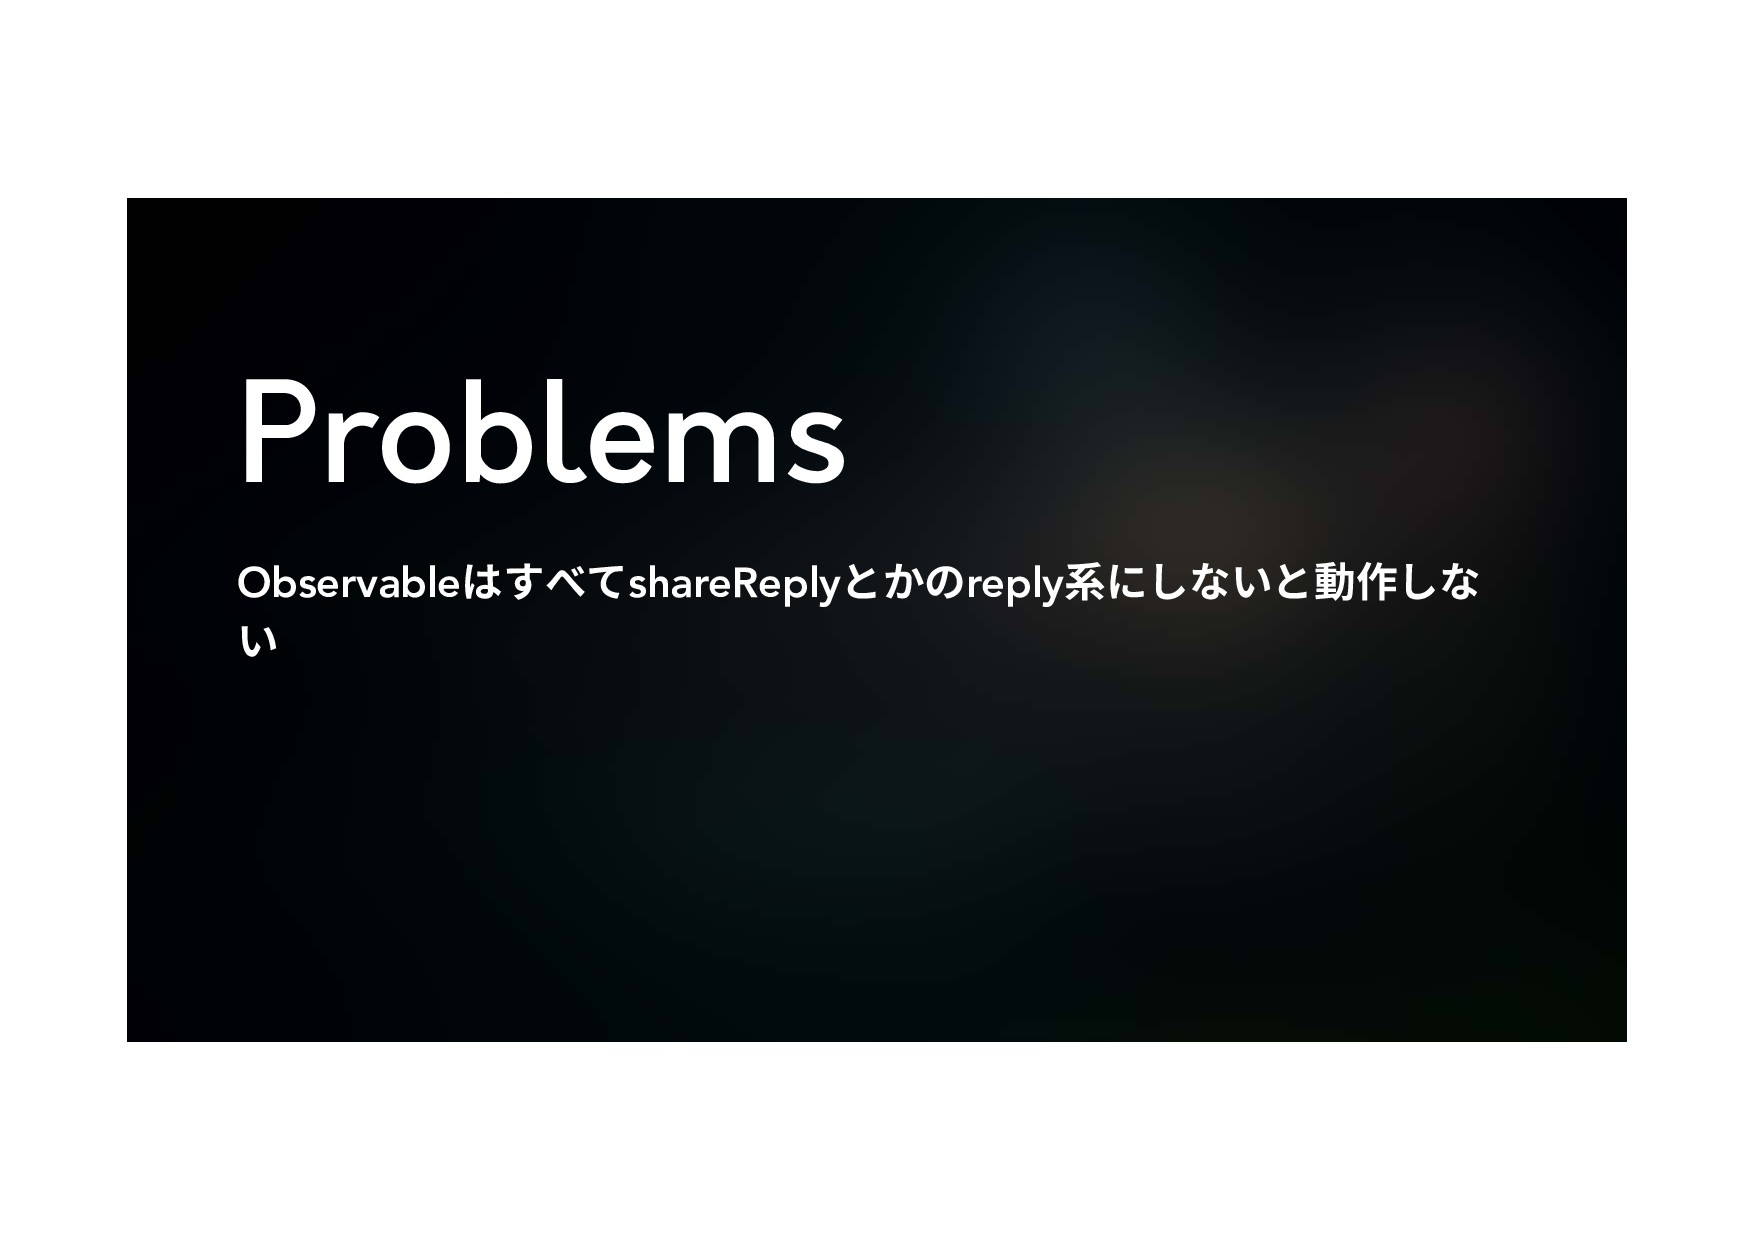 Problems ObservableכׅץגshareReplyהַךreply禸ח׃זְ...